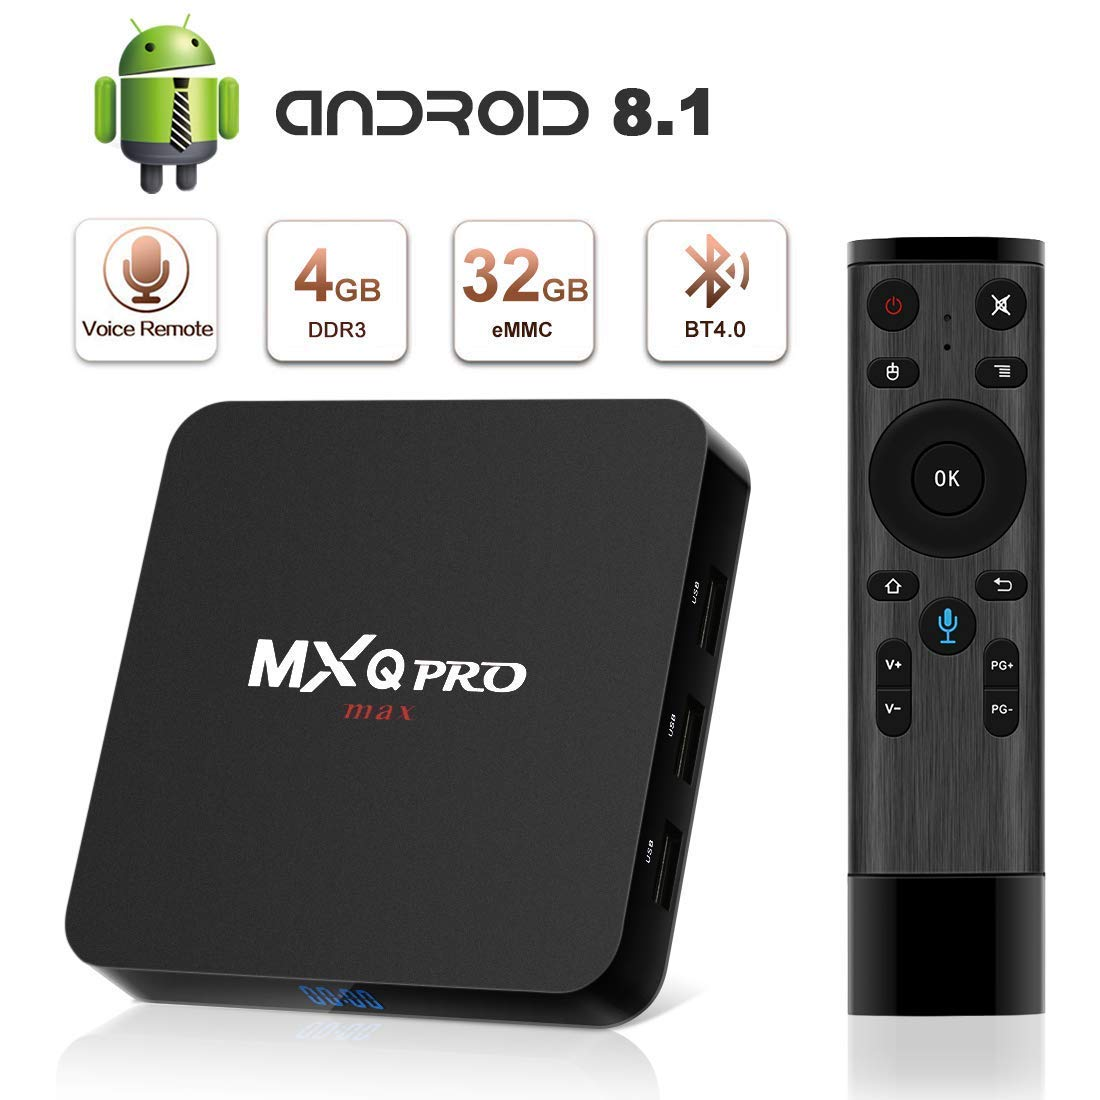 Android 8.1 TV Box, Superpow Smart TV Box Quad Core 4GB RAM+32GB ROM, BT 4.0, 4K*2K UHD H.265, HDMI, USB*3, WiFi Media Player, Android Set-Top Box con Voice Remote Control